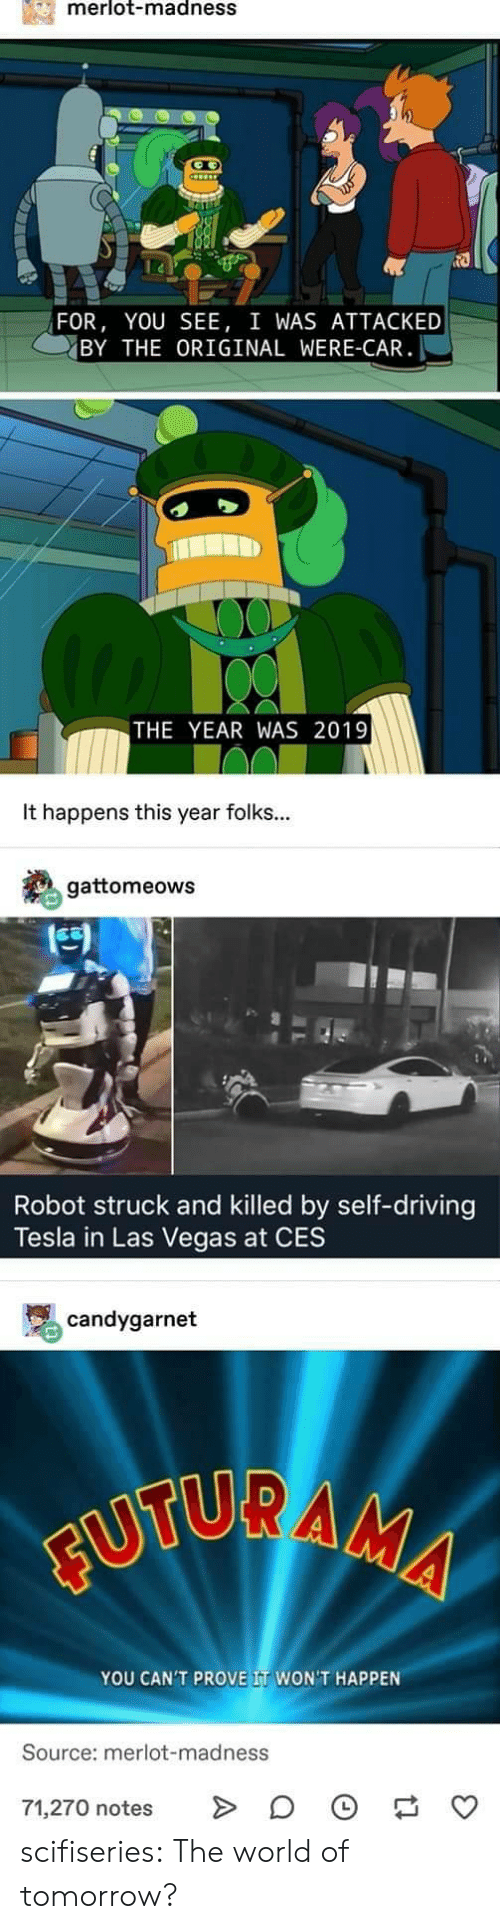 madness: merlot-madnesS  FOR, YOU SEE, I WAS ATTACKED  BY THE ORIGINAL WERE-CAR  THE YEAR WAS 2019  It happens this year folks...  gattomeows  凹  Robot struck and killed by self-driving  Tesla in Las Vegas at CES  骂candygarnet  YOU CAN'T PROVE IT WON'T HAPPEN  Source: merlot-madness  71,270 notes > 。 scifiseries:  The world of tomorrow?